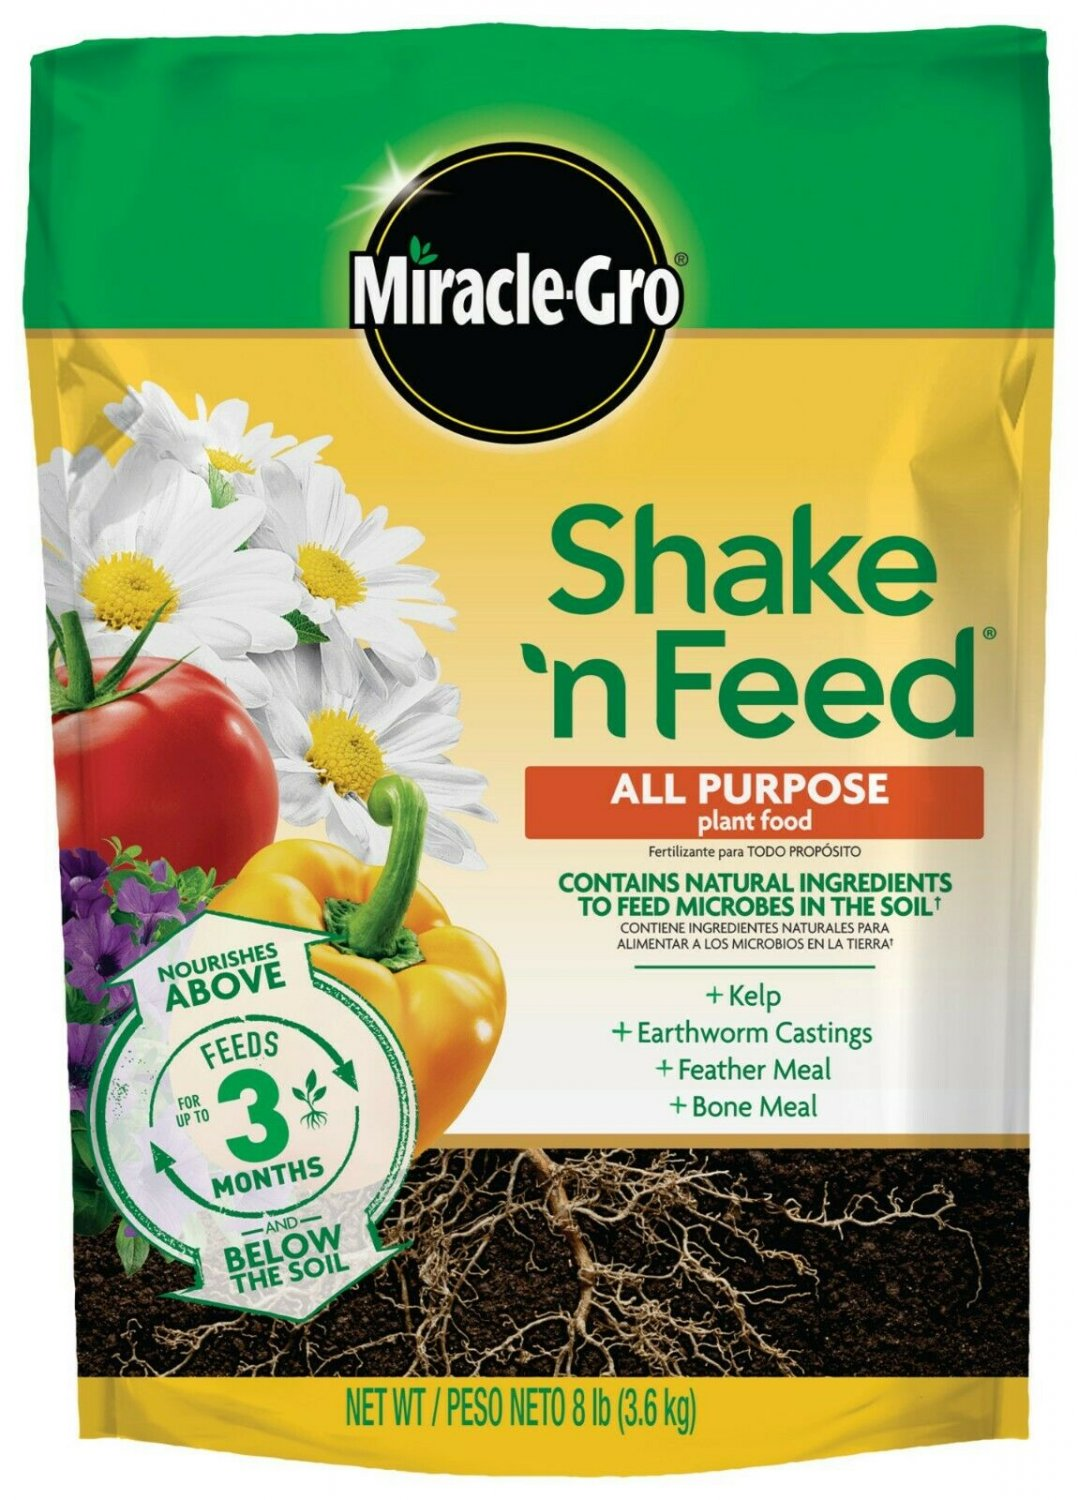 Miracle-Gro Shake 'N Feed All Purpose Plant Food 8 lbs. Covers 320 sq. ft.